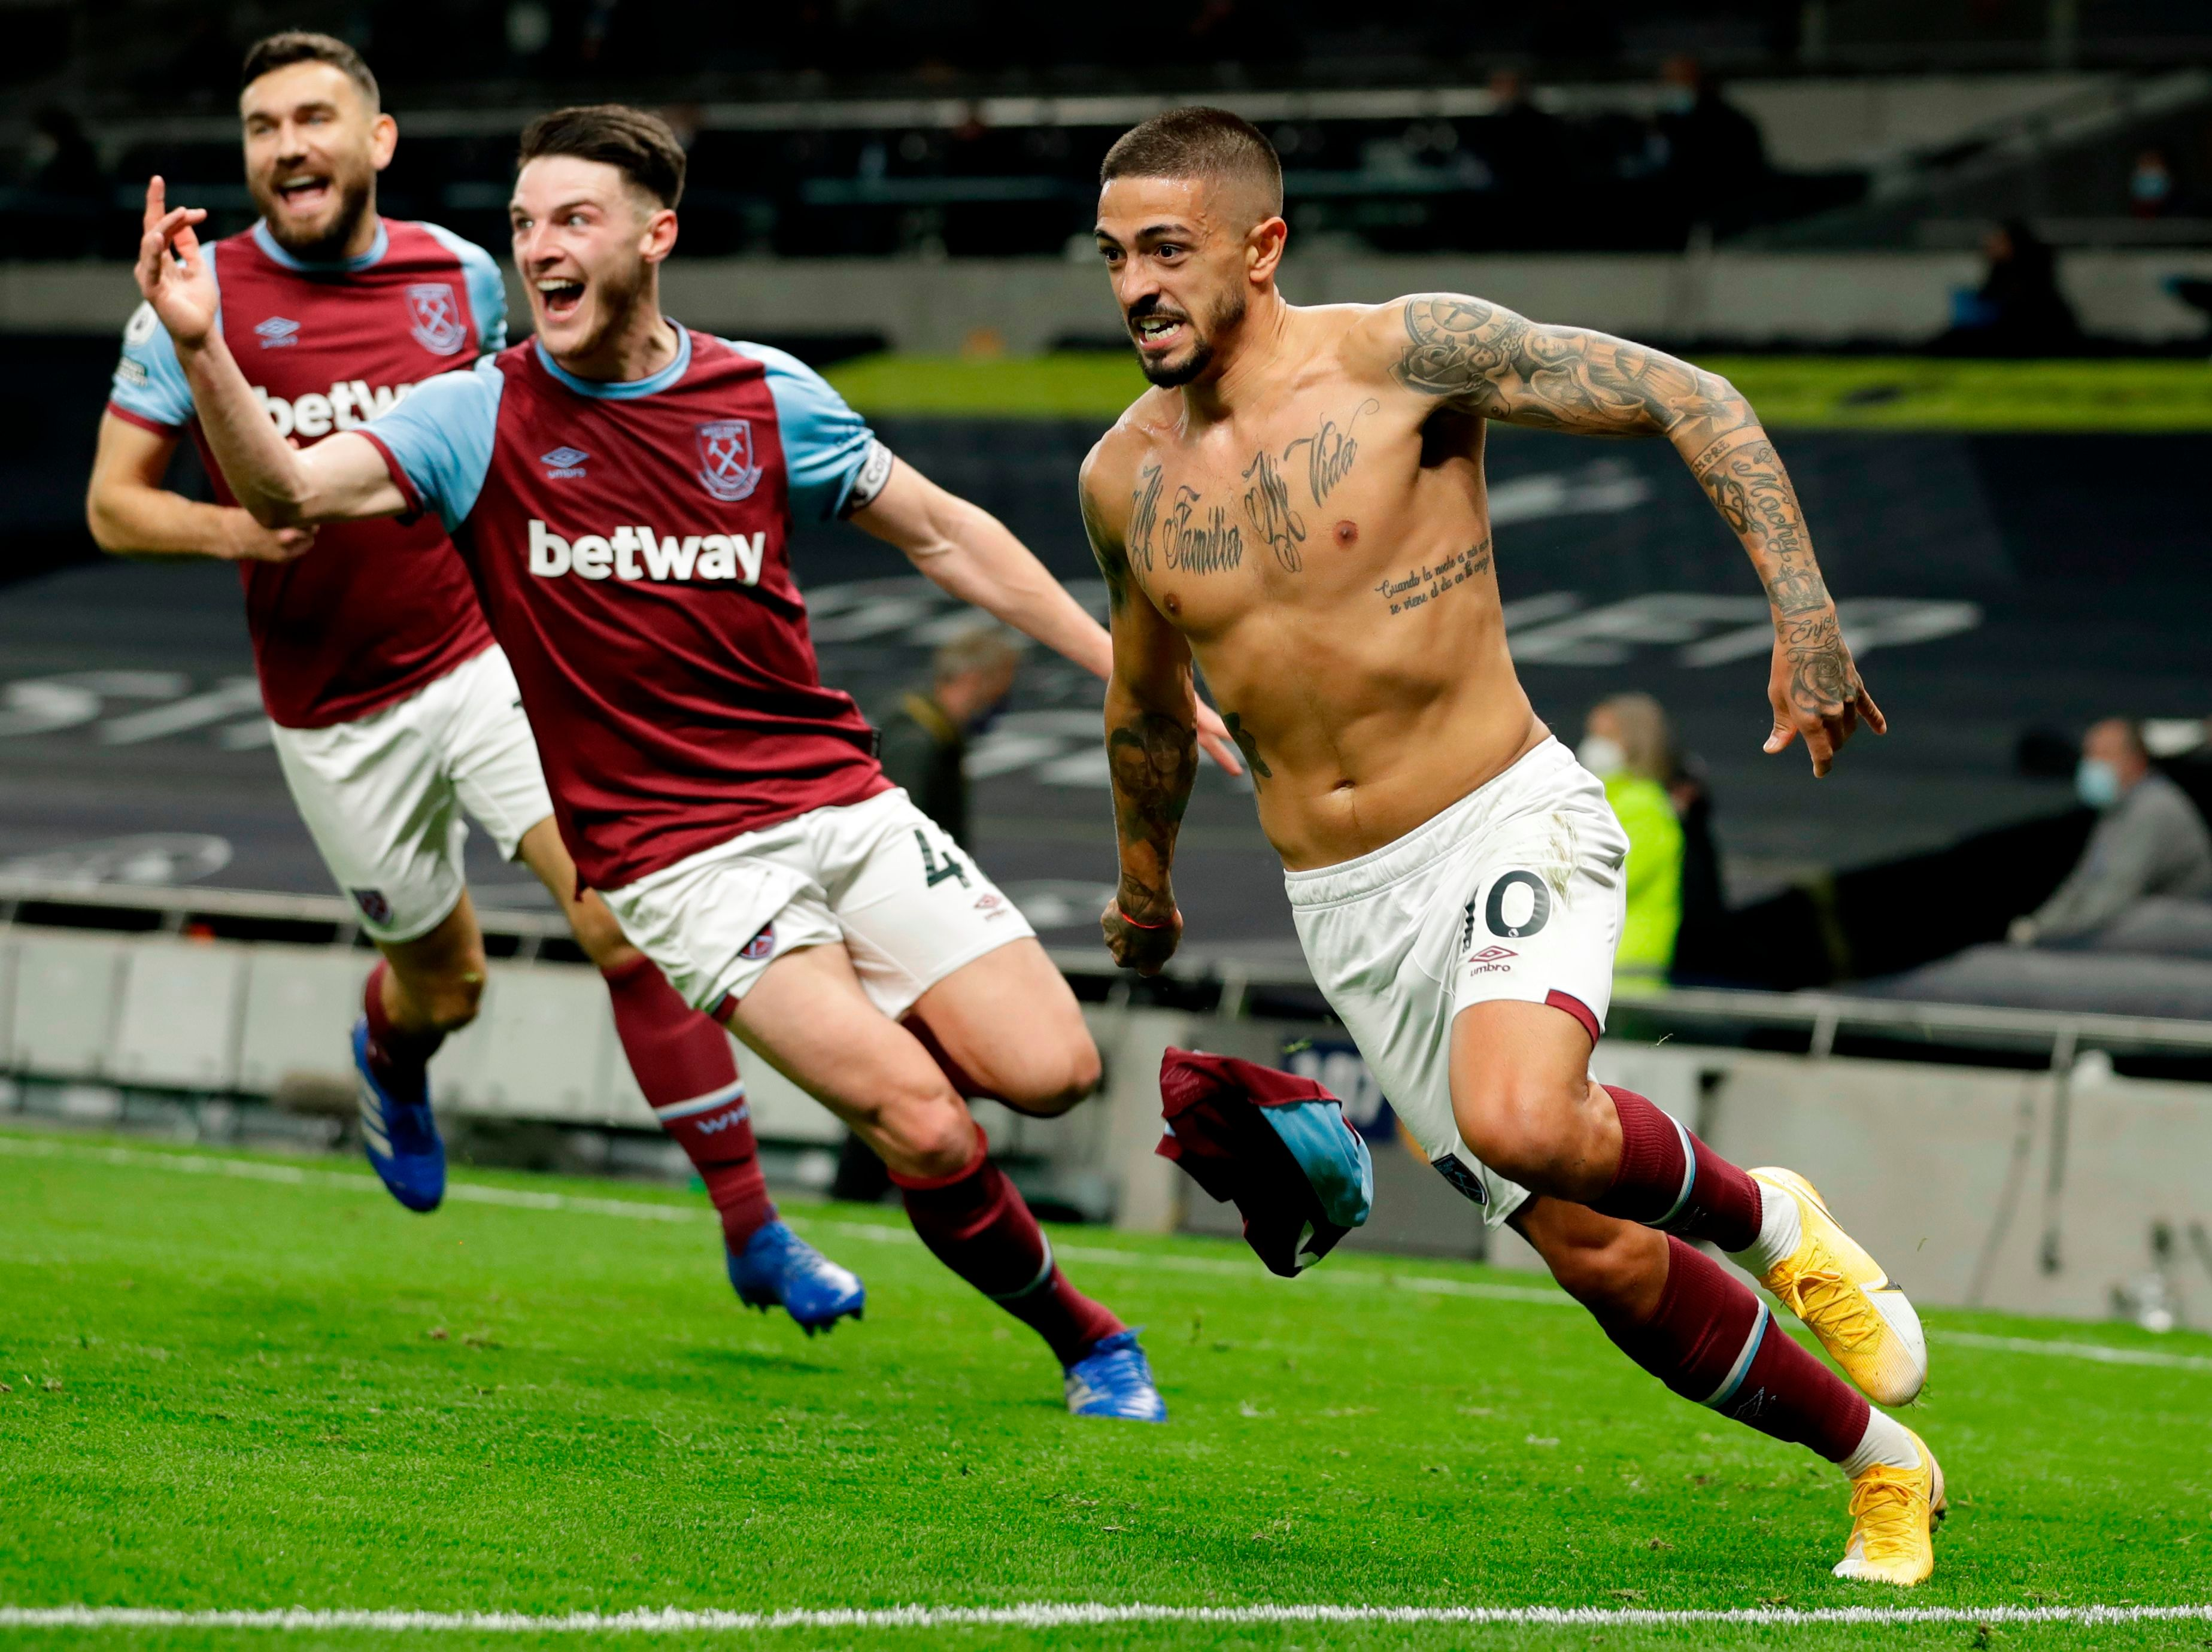 These scenes will bring a smile to the face of any West Ham fan for years to come